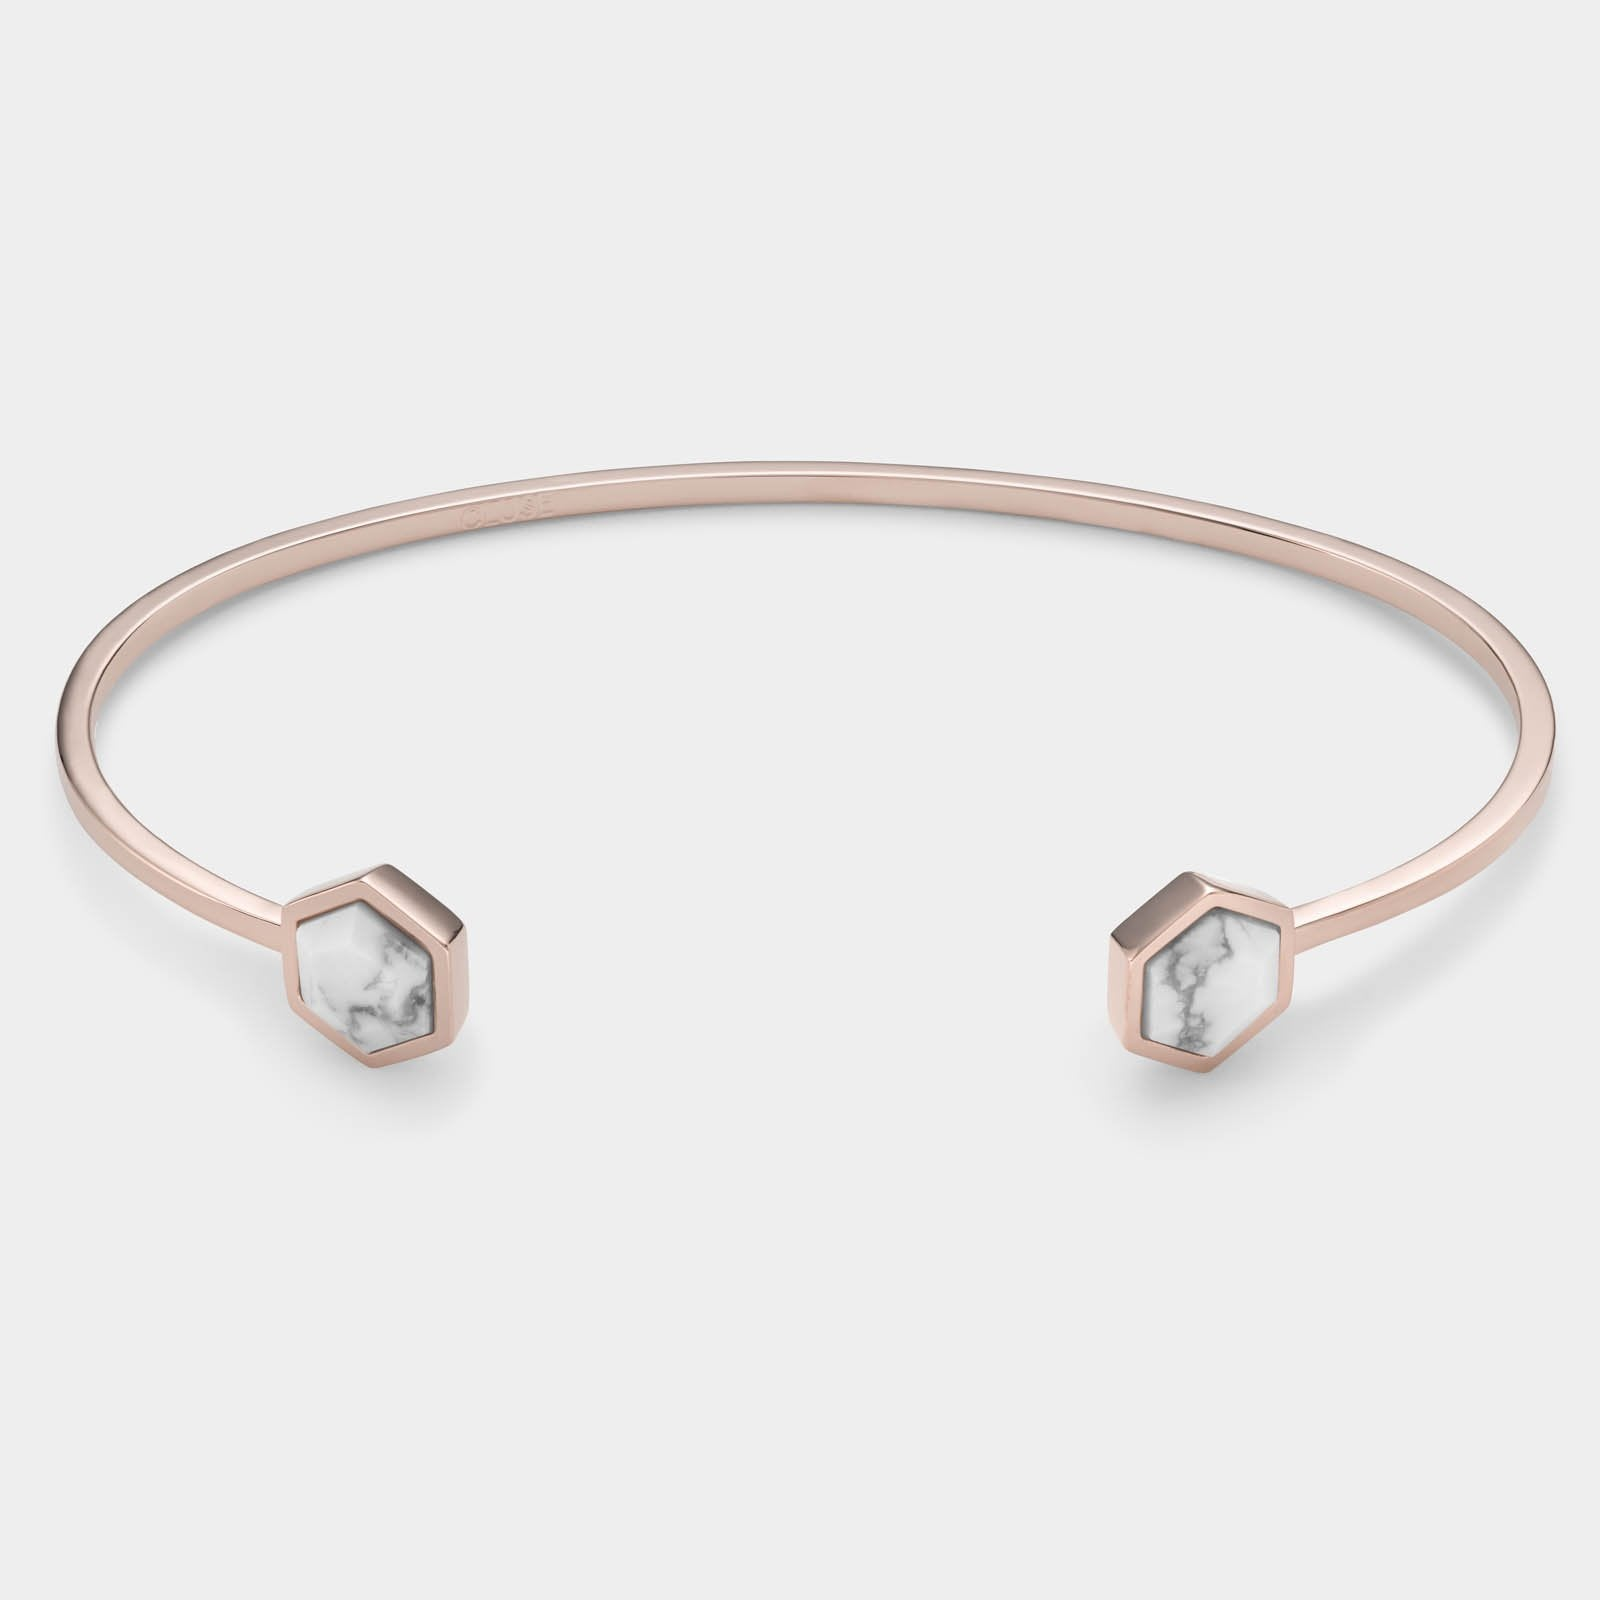 CLUSE Idylle Rose Gold Marble Hexagons Open Cuff Bracelet CLJ10003 - Pulsera